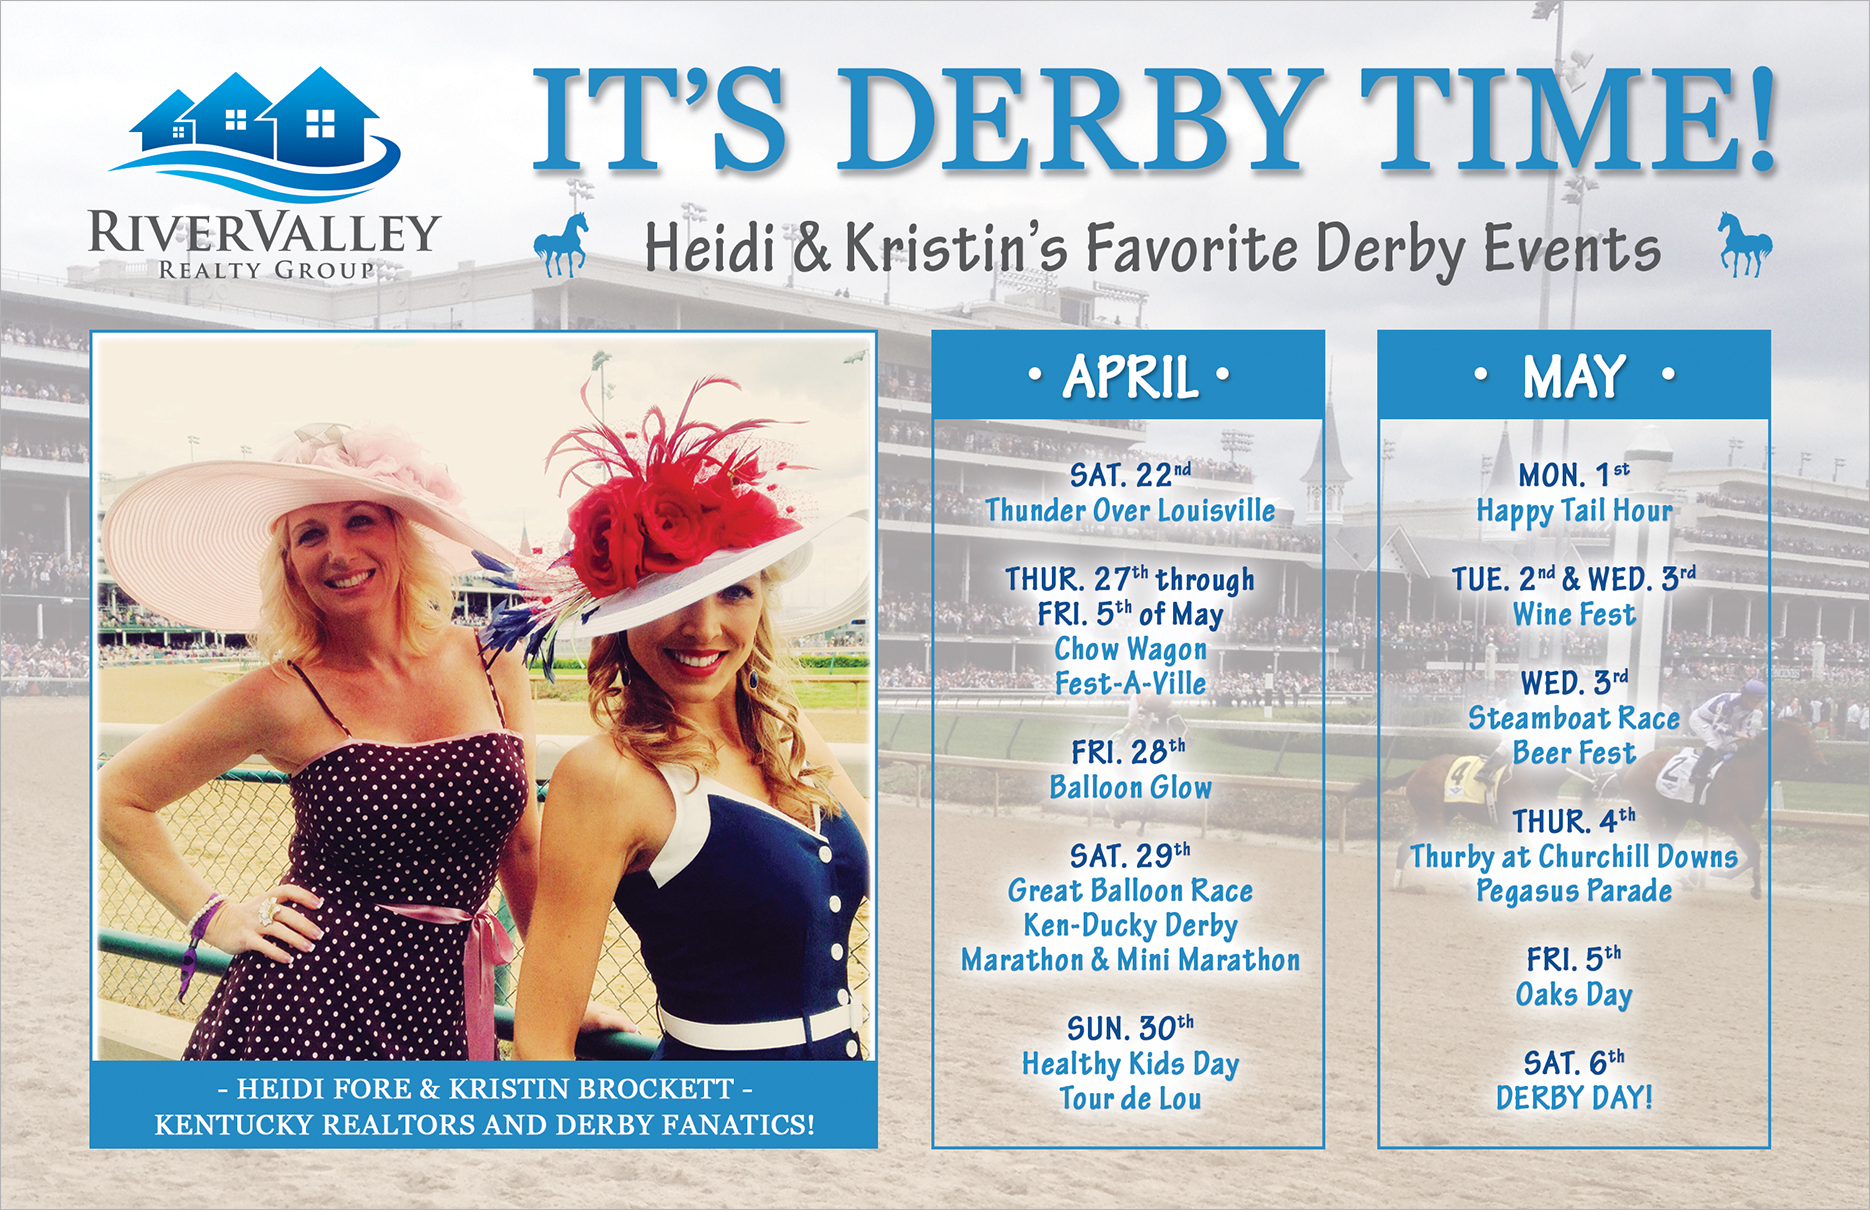 Heidi Fore & Kristin Brockett's Favorite Derby Events!